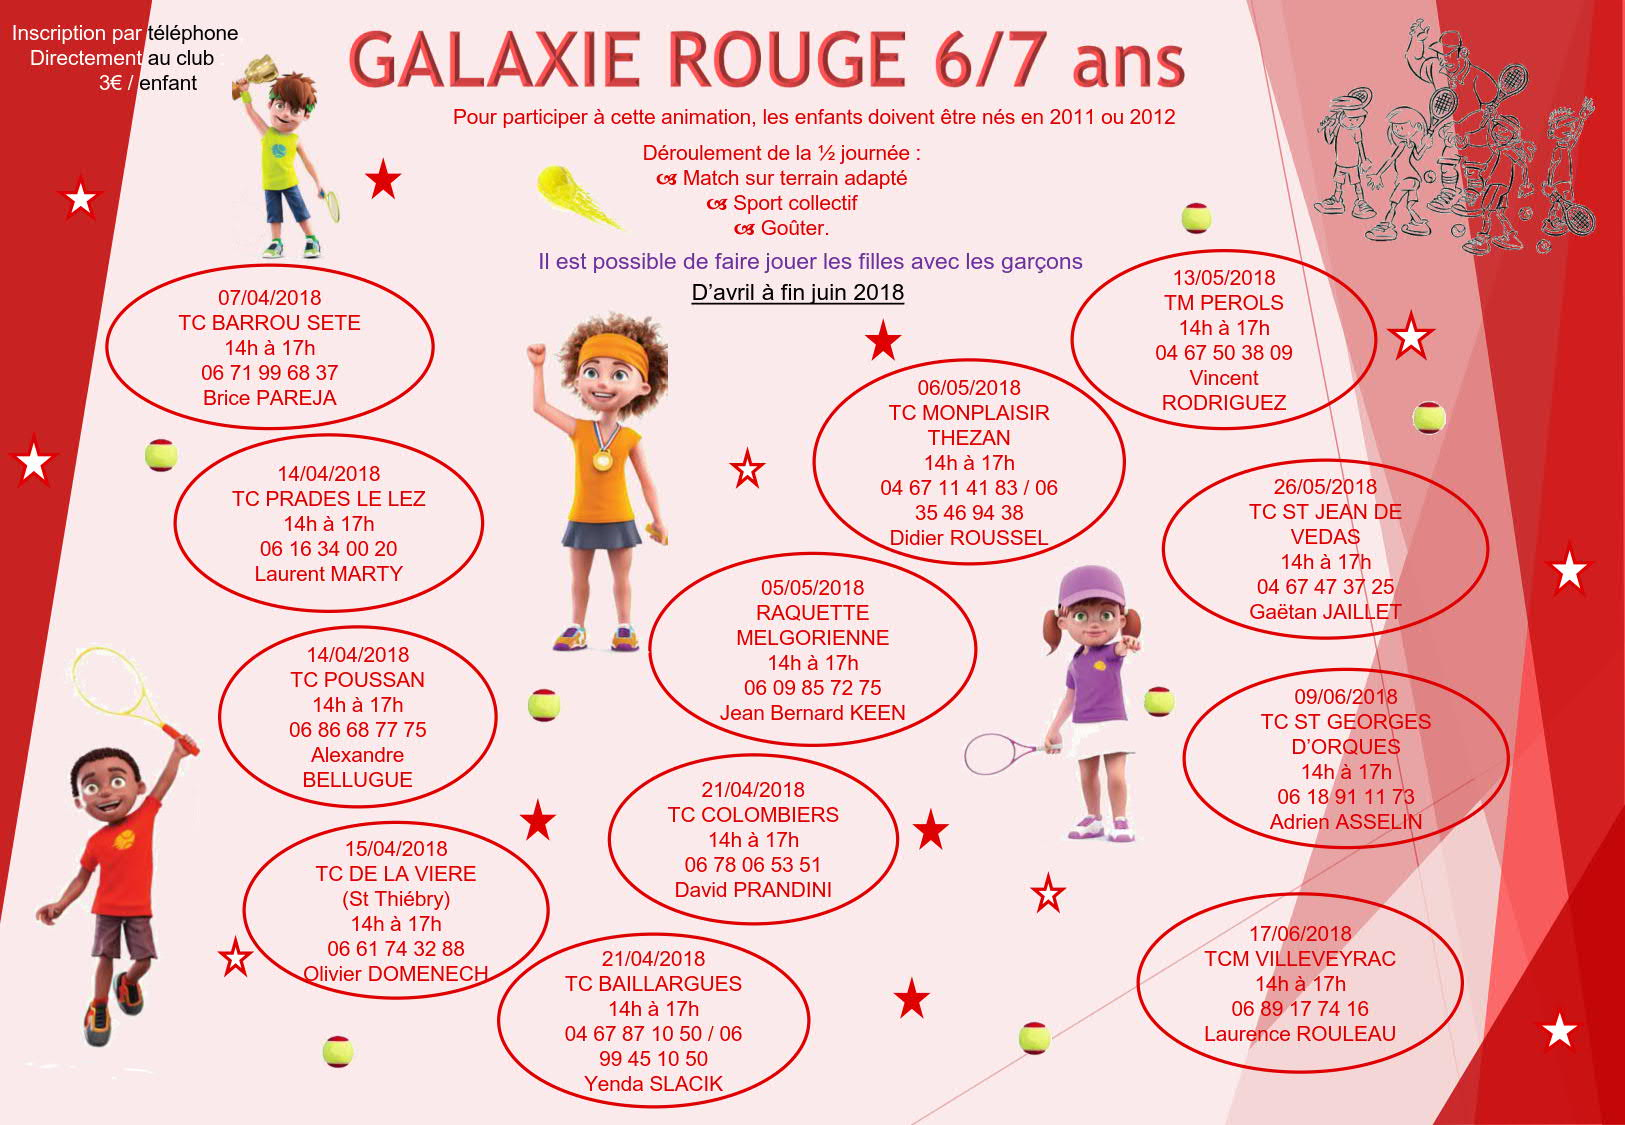 Galaxie rouge avril juin 2018